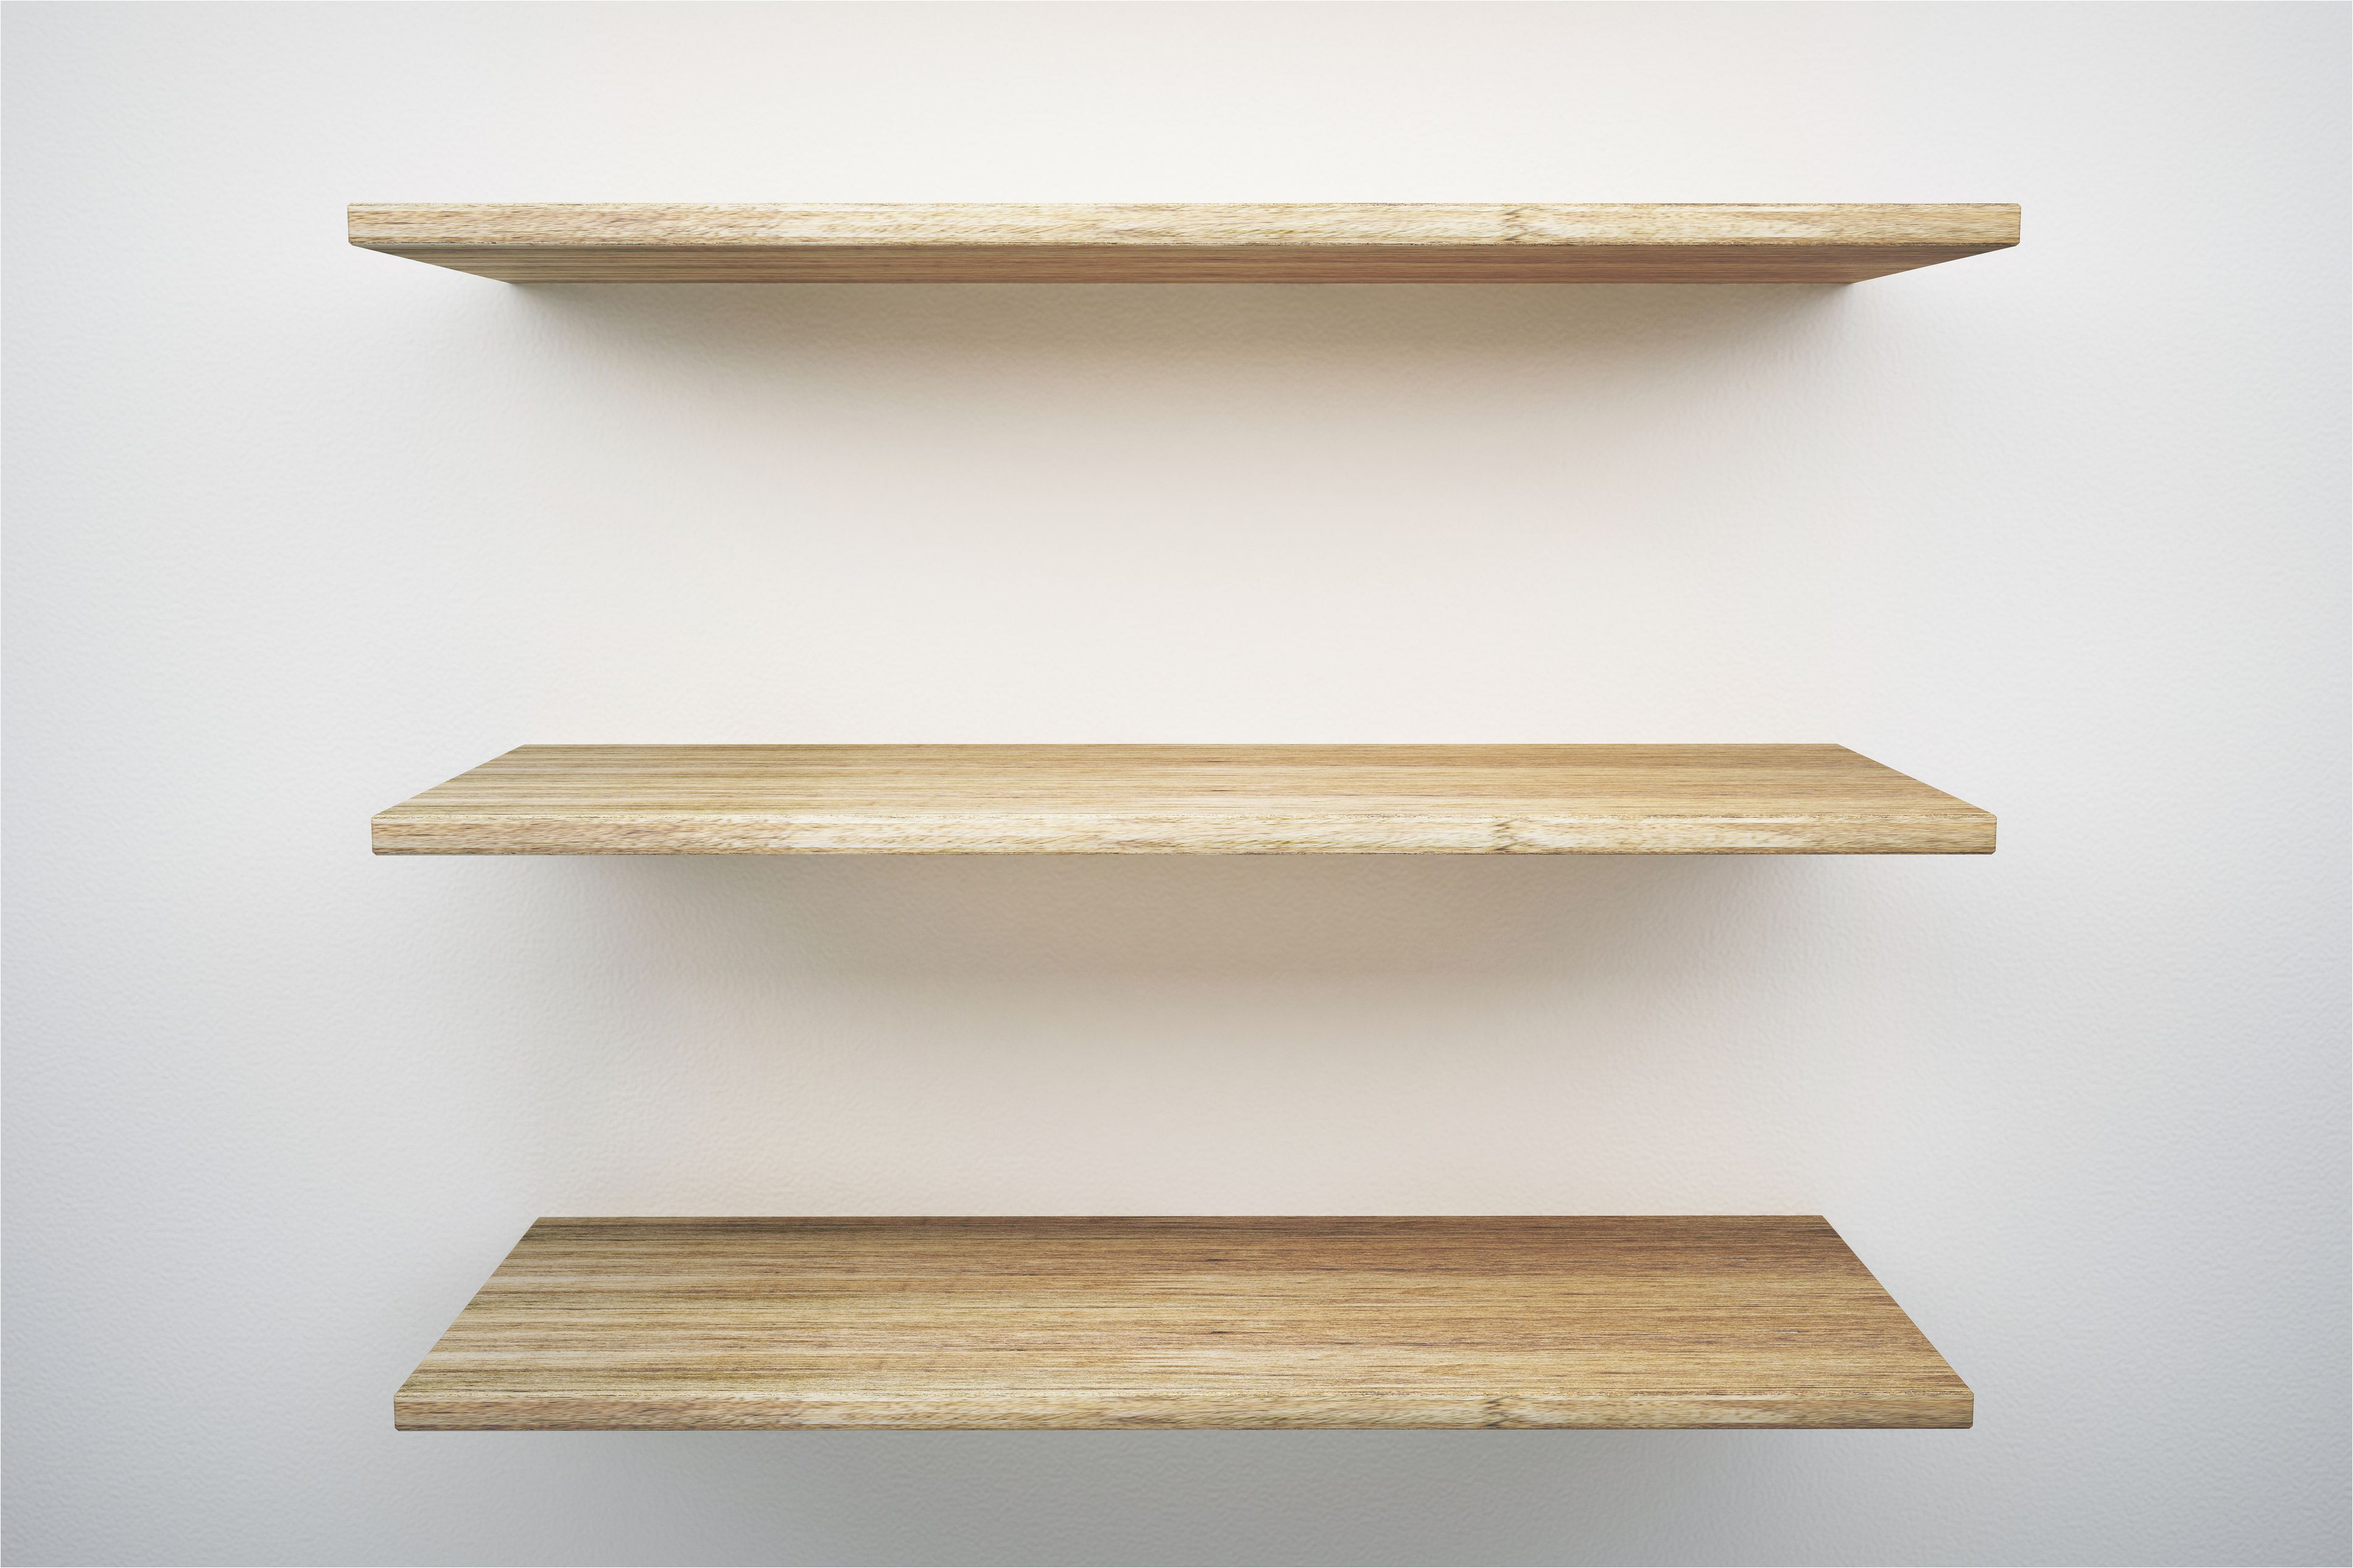 wooden shelves mounted on white wall 748563421 5a83c2aad8fdd50037f4d5dc jpg